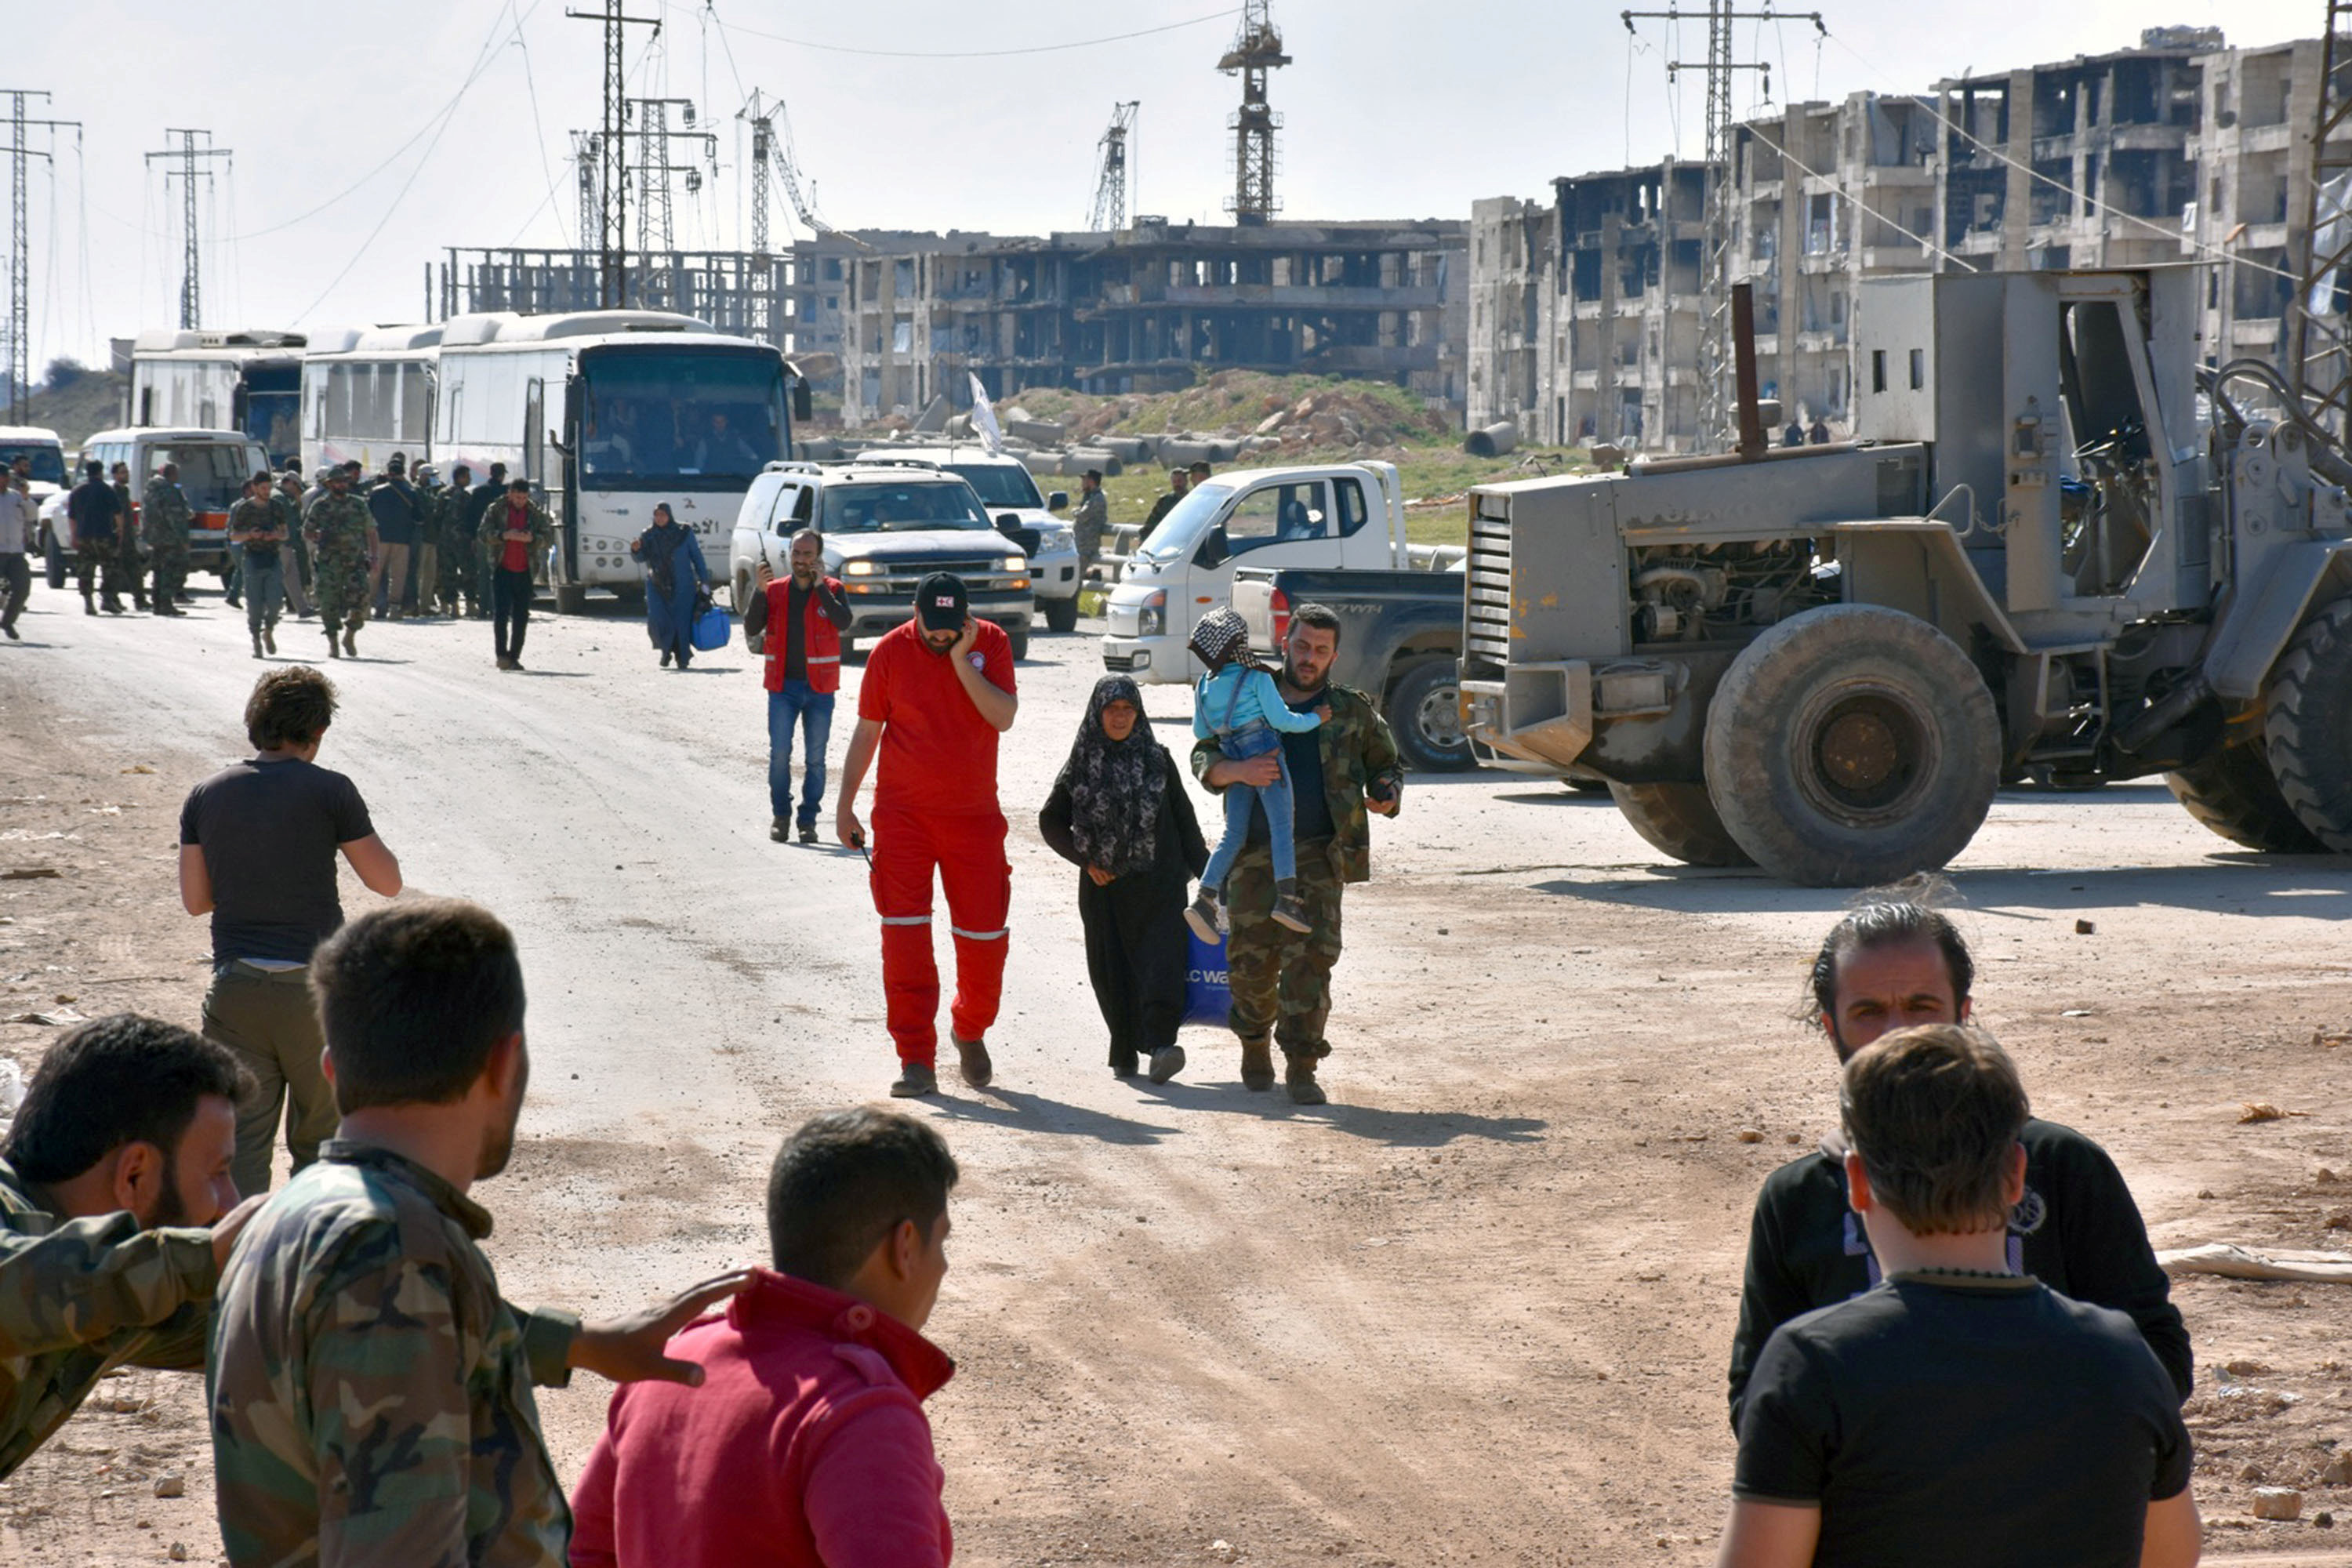 Evacuees from the two rebel-besieged Shi'ite villages of al-Foua and Kefraya, arrive to government-controlled Aleppo, in this handout picture provided by SANA on April 19, 2017, Syria. SANA/Handout via REUTERS